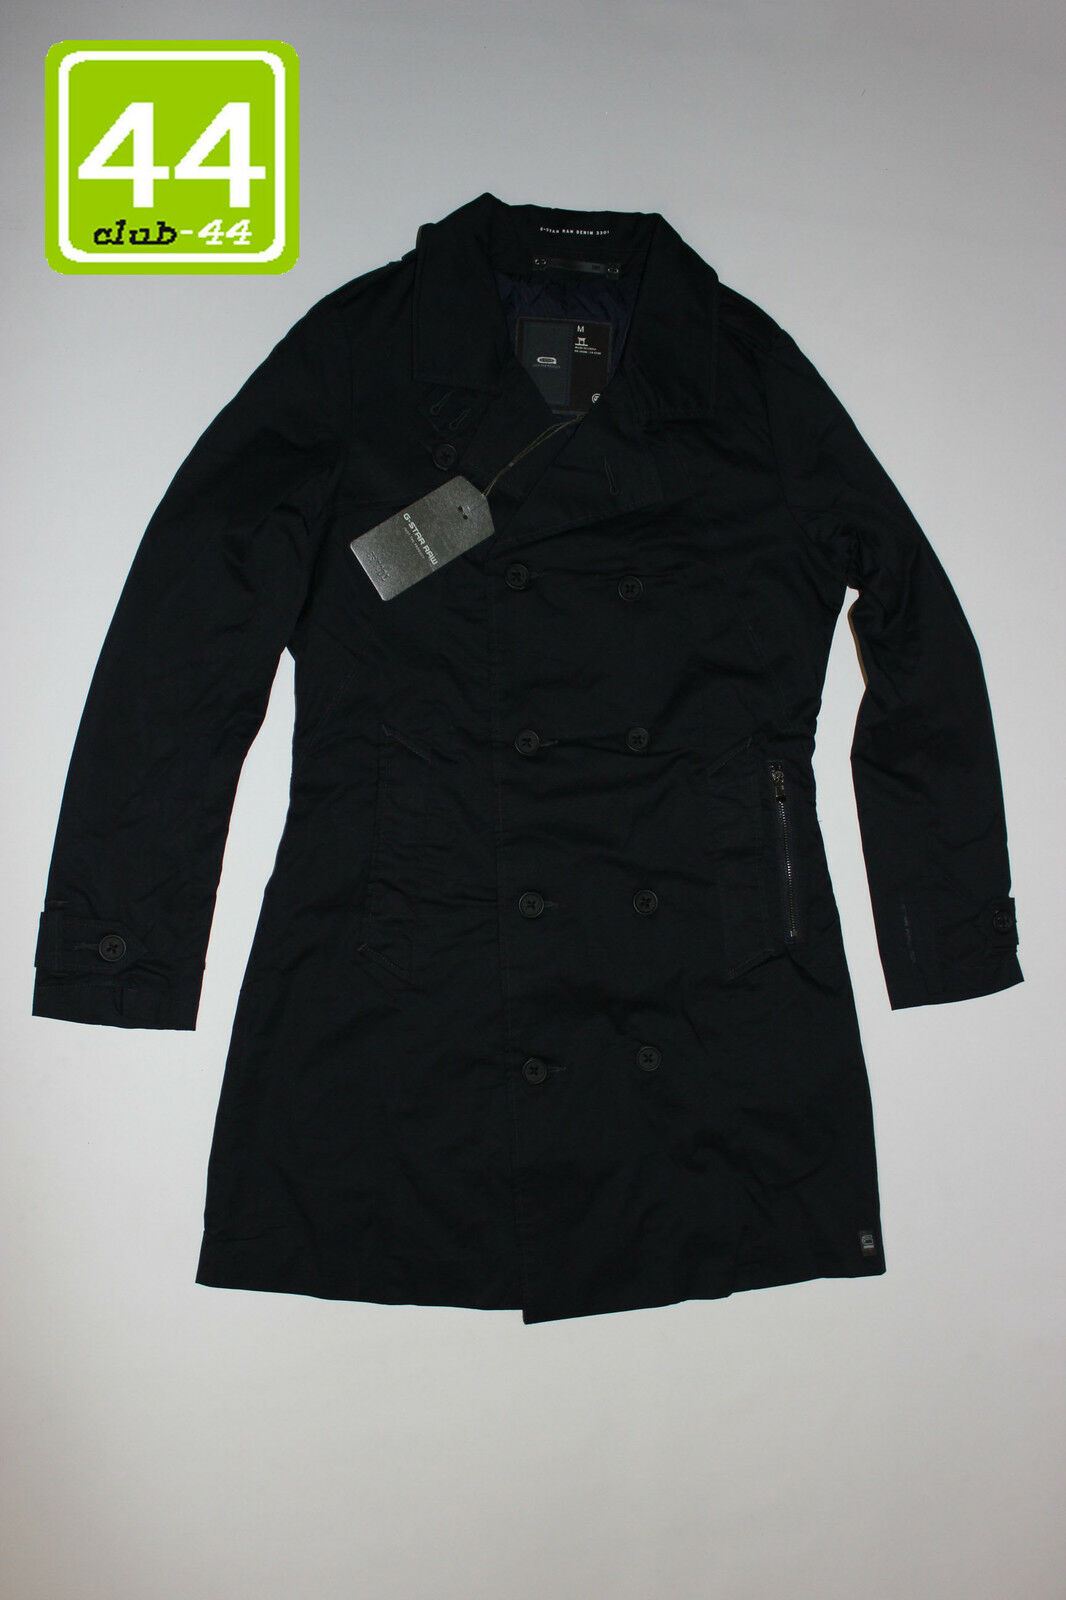 neu g star jacke mantel ultima alket trench gr m wmn coat. Black Bedroom Furniture Sets. Home Design Ideas